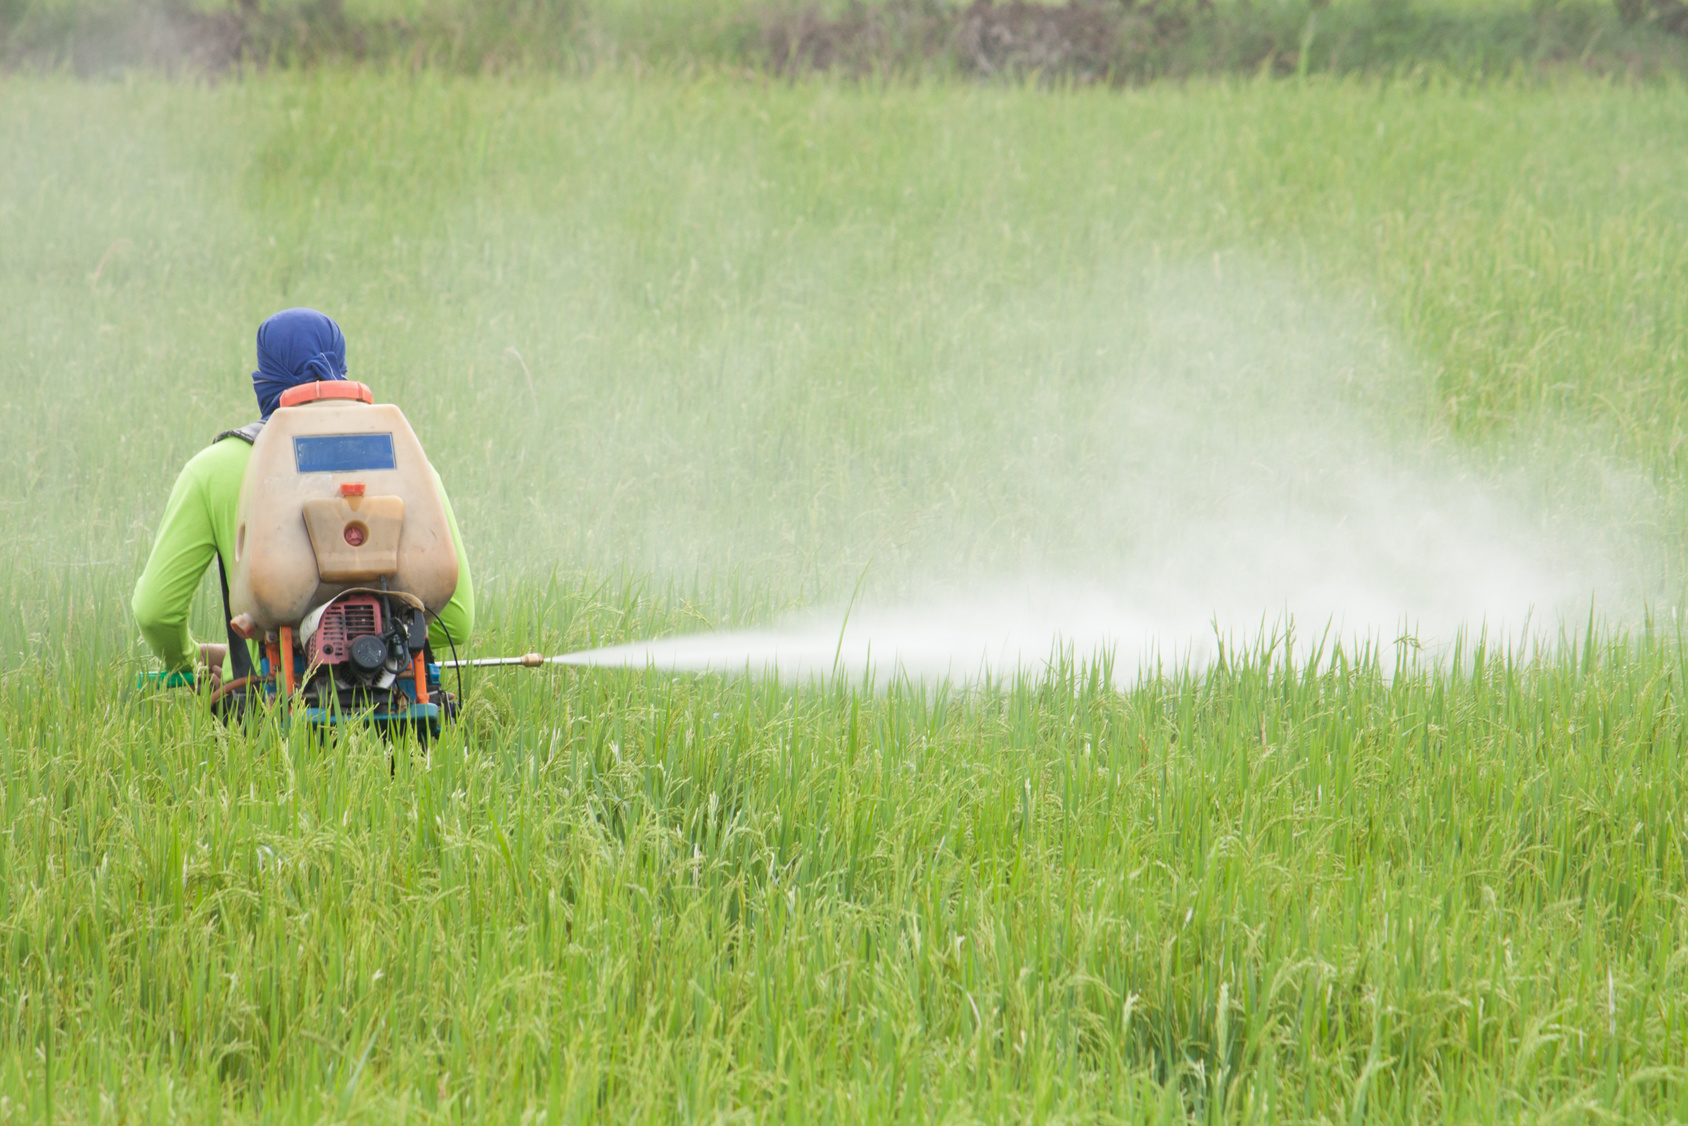 Farmers Sue Monsanto Claiming Roundup Weed Killer Causes Cancer